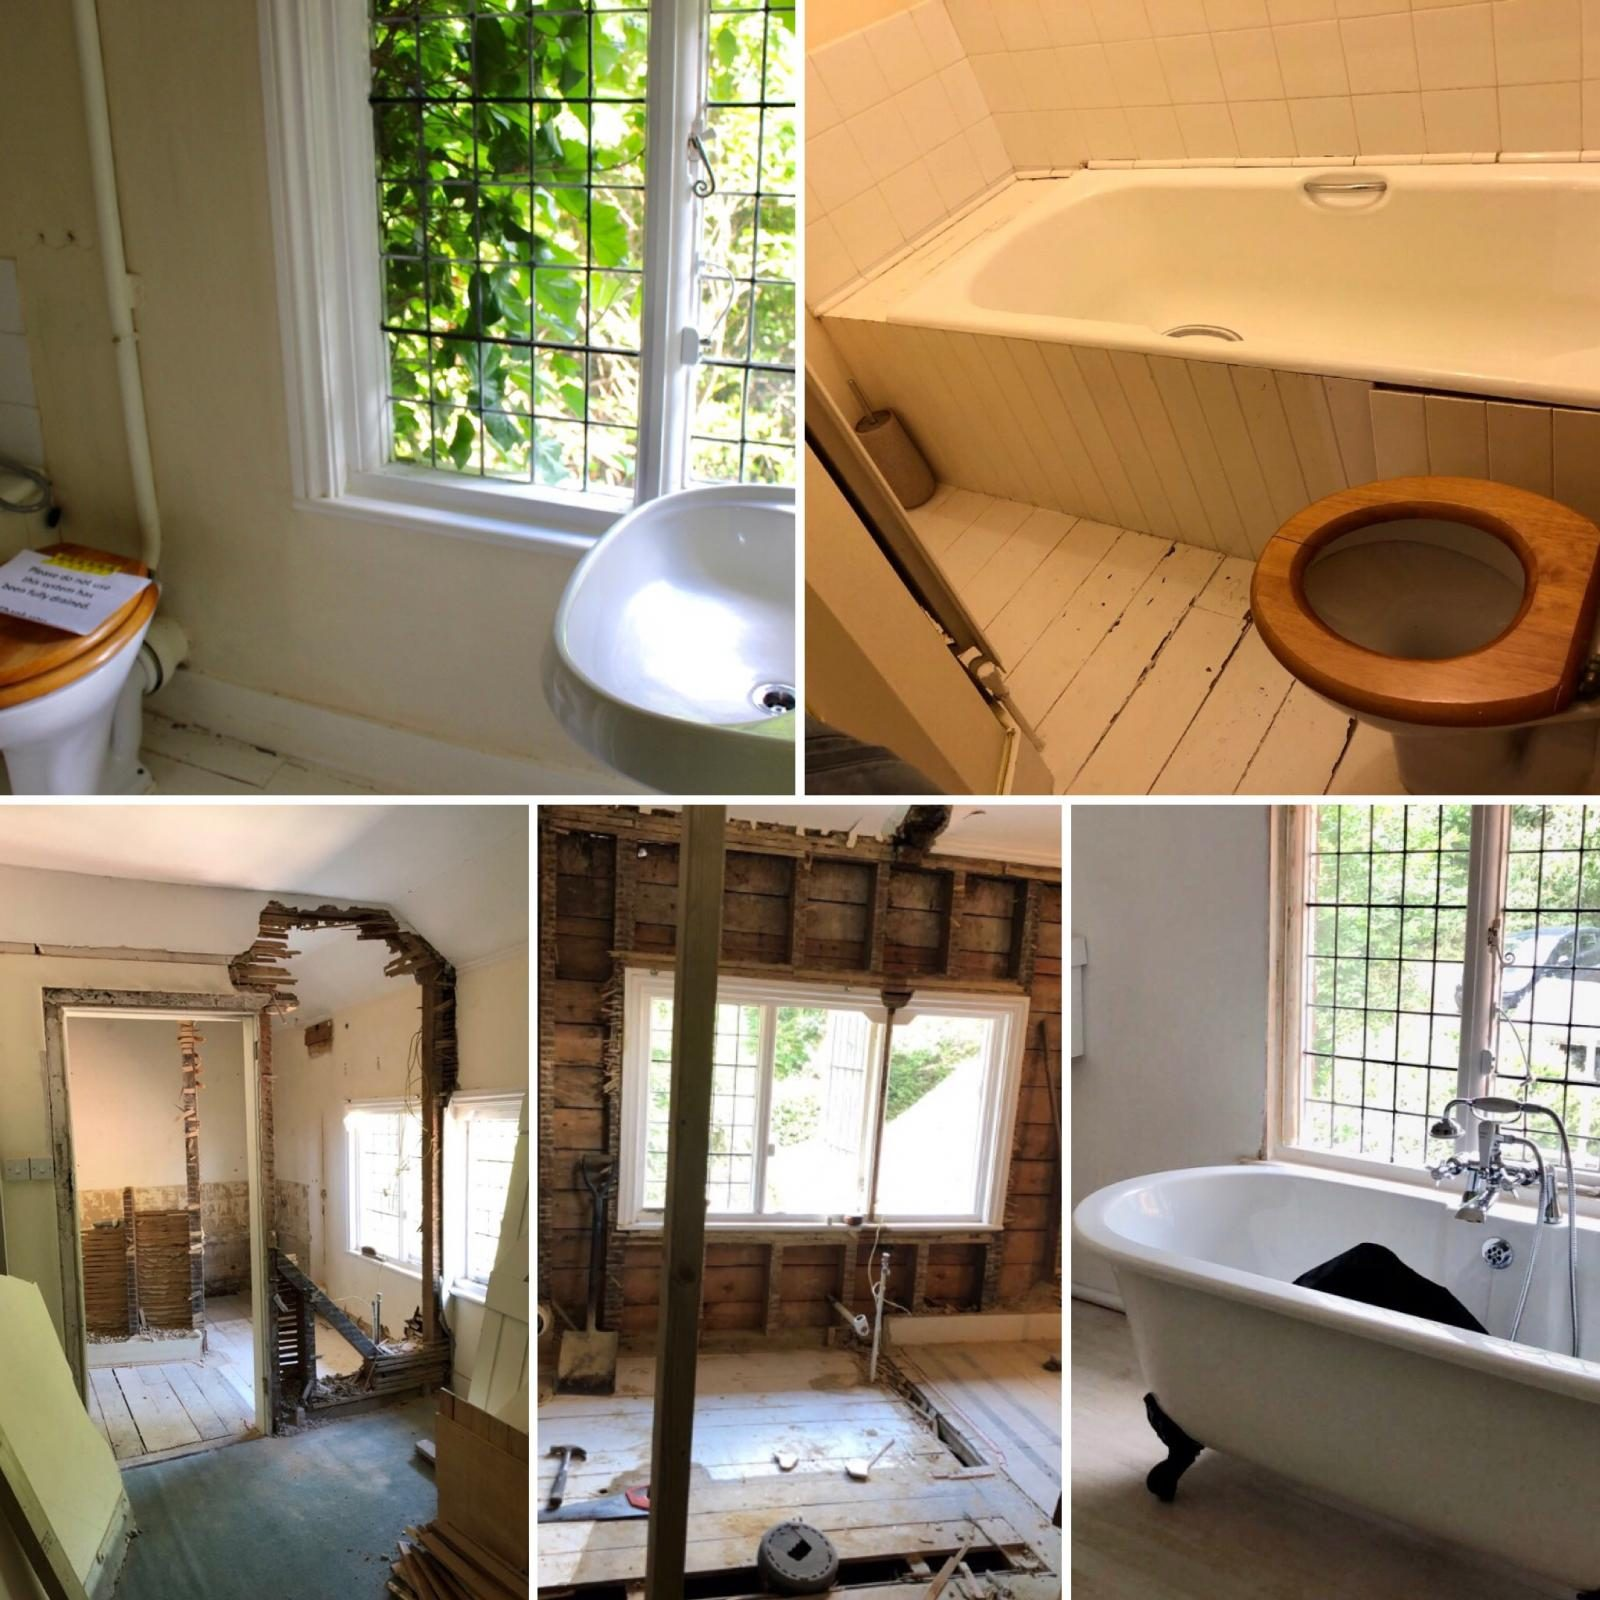 Our bathroom transformation – from Victorian water closet to modern family bathroom